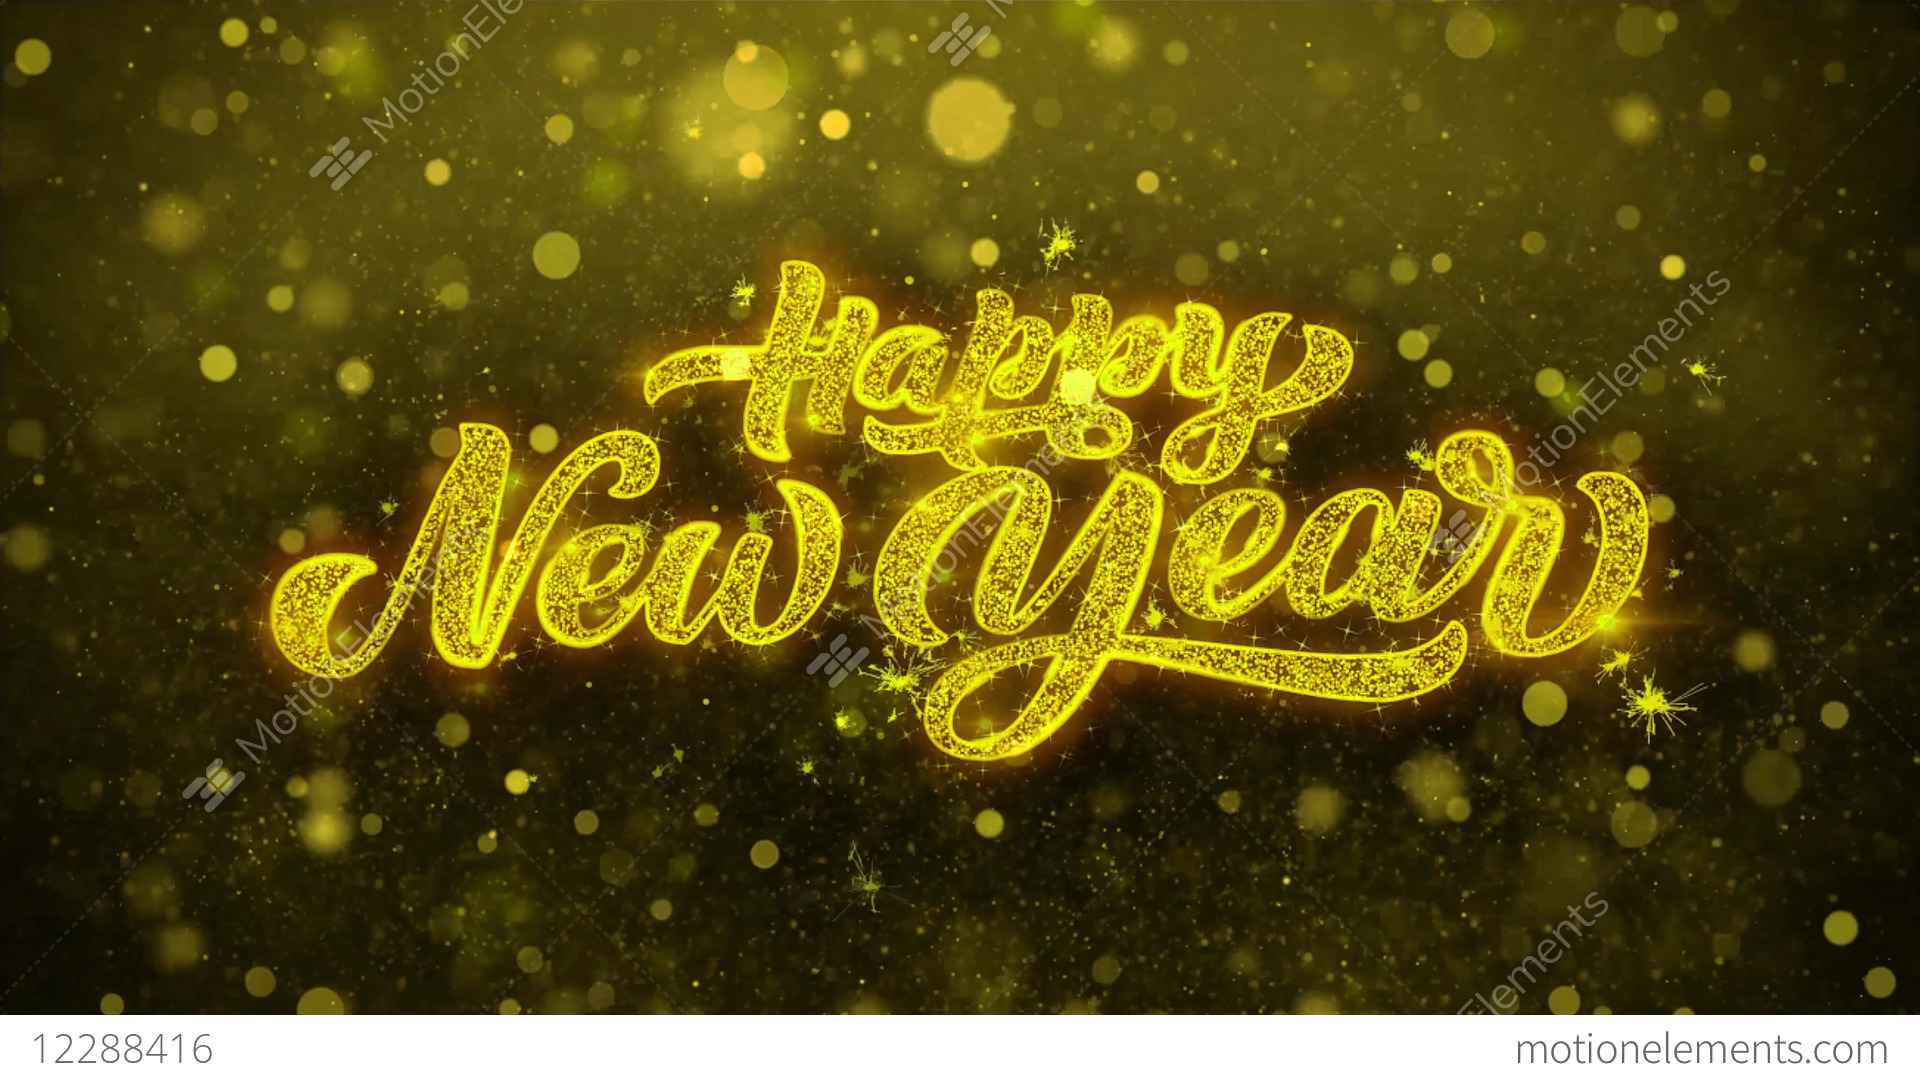 happy new year wishes greetings card invitation stock video footage